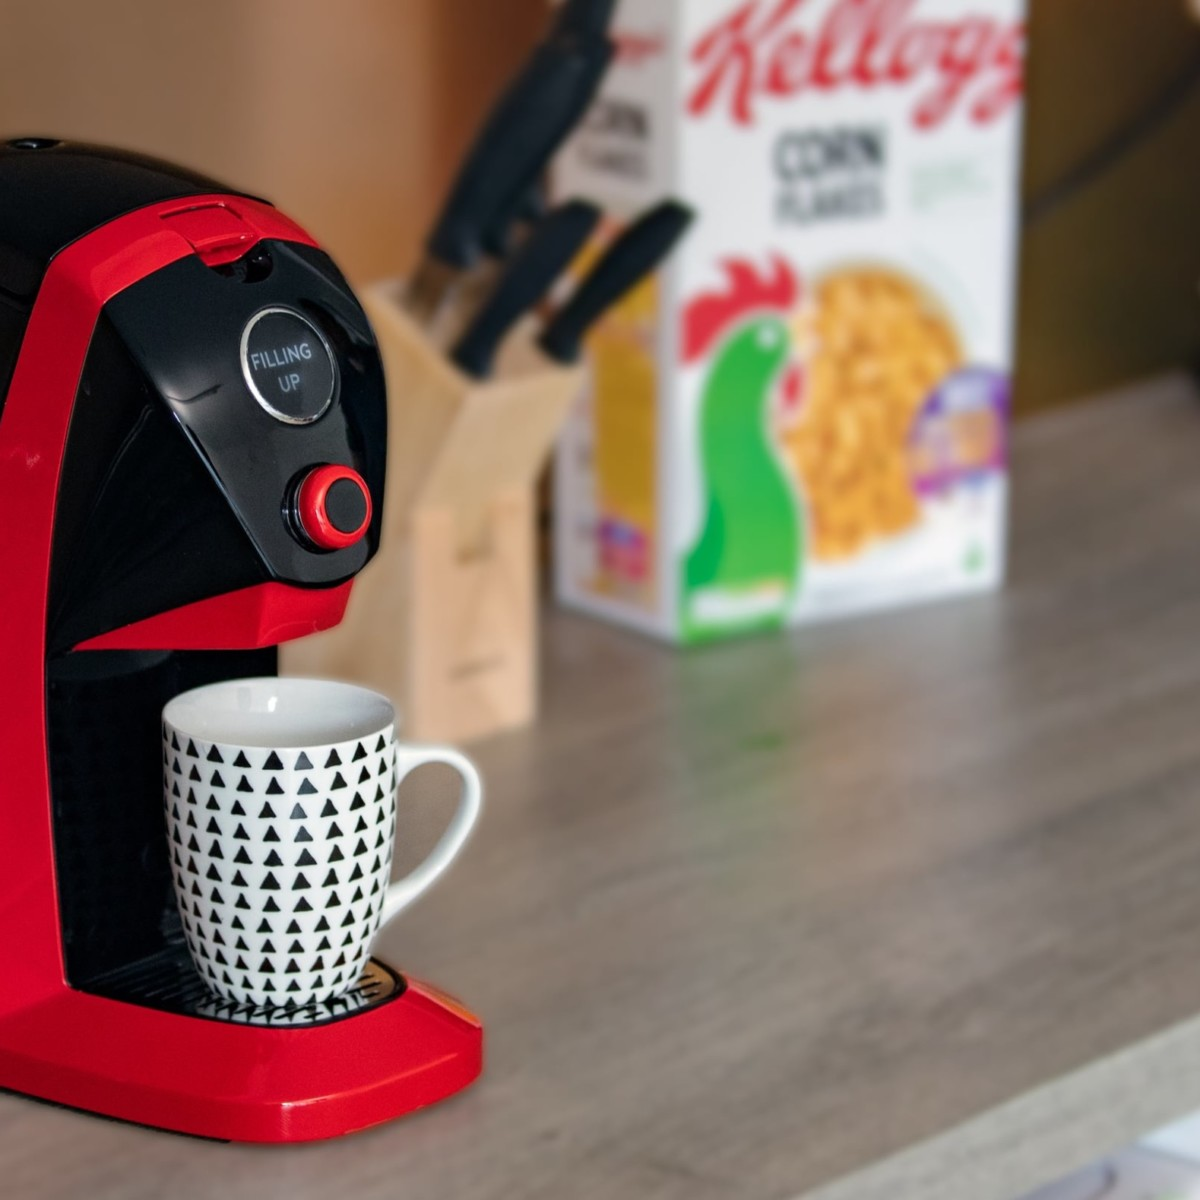 BRÜ Instant Tea Brewing Machine produces the perfect cup no matter how you like it